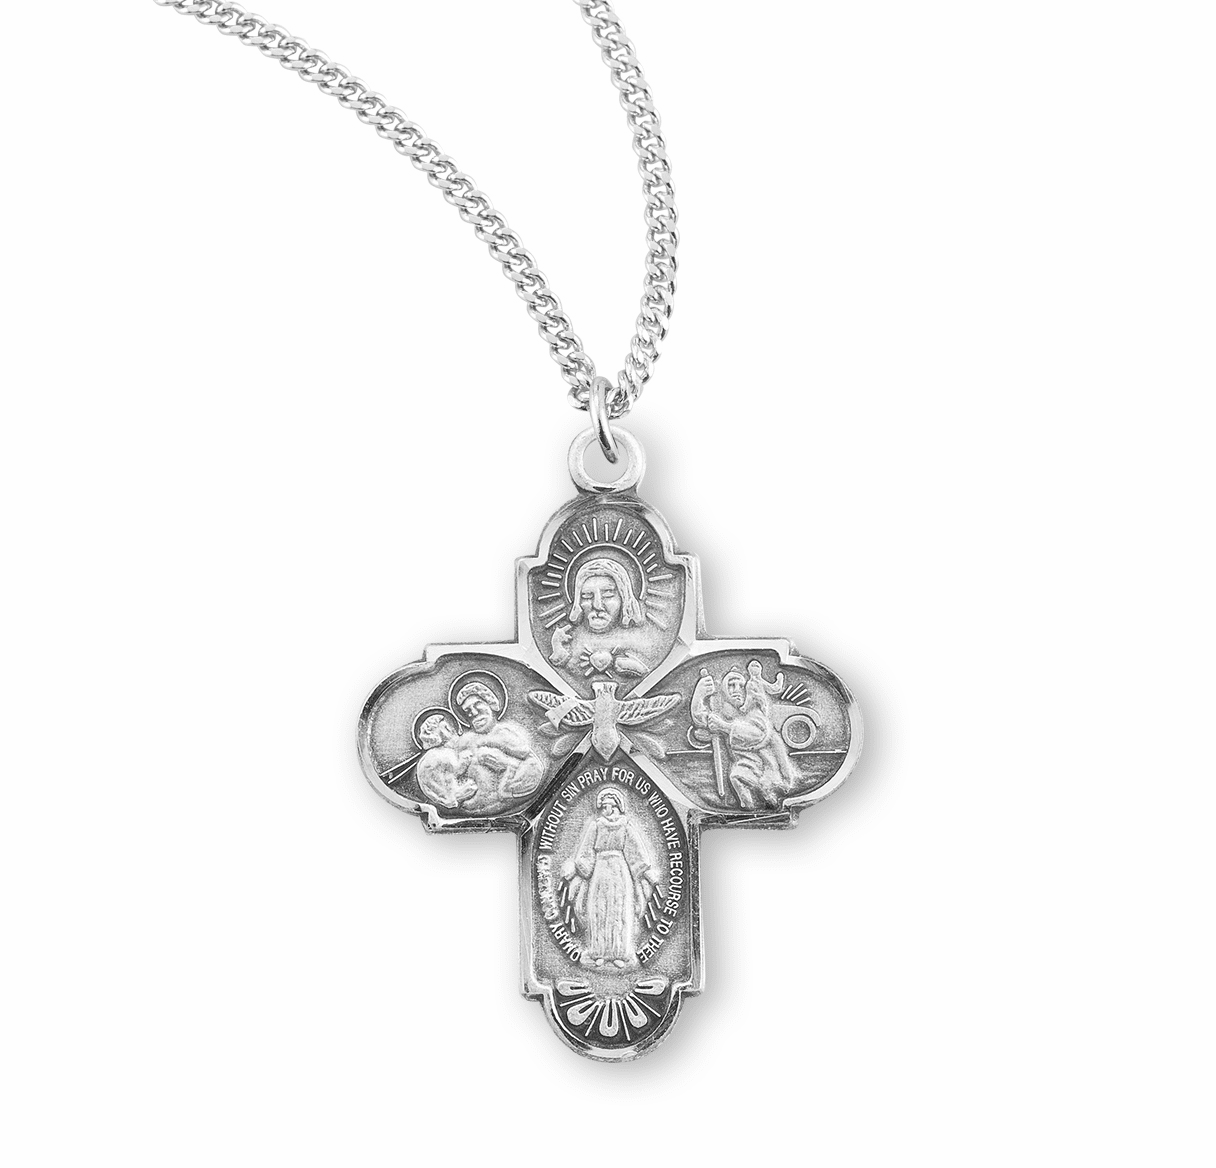 Small Holy Spirit Sterling Silver Four-Way Cross Medal Necklace by HMH Religious